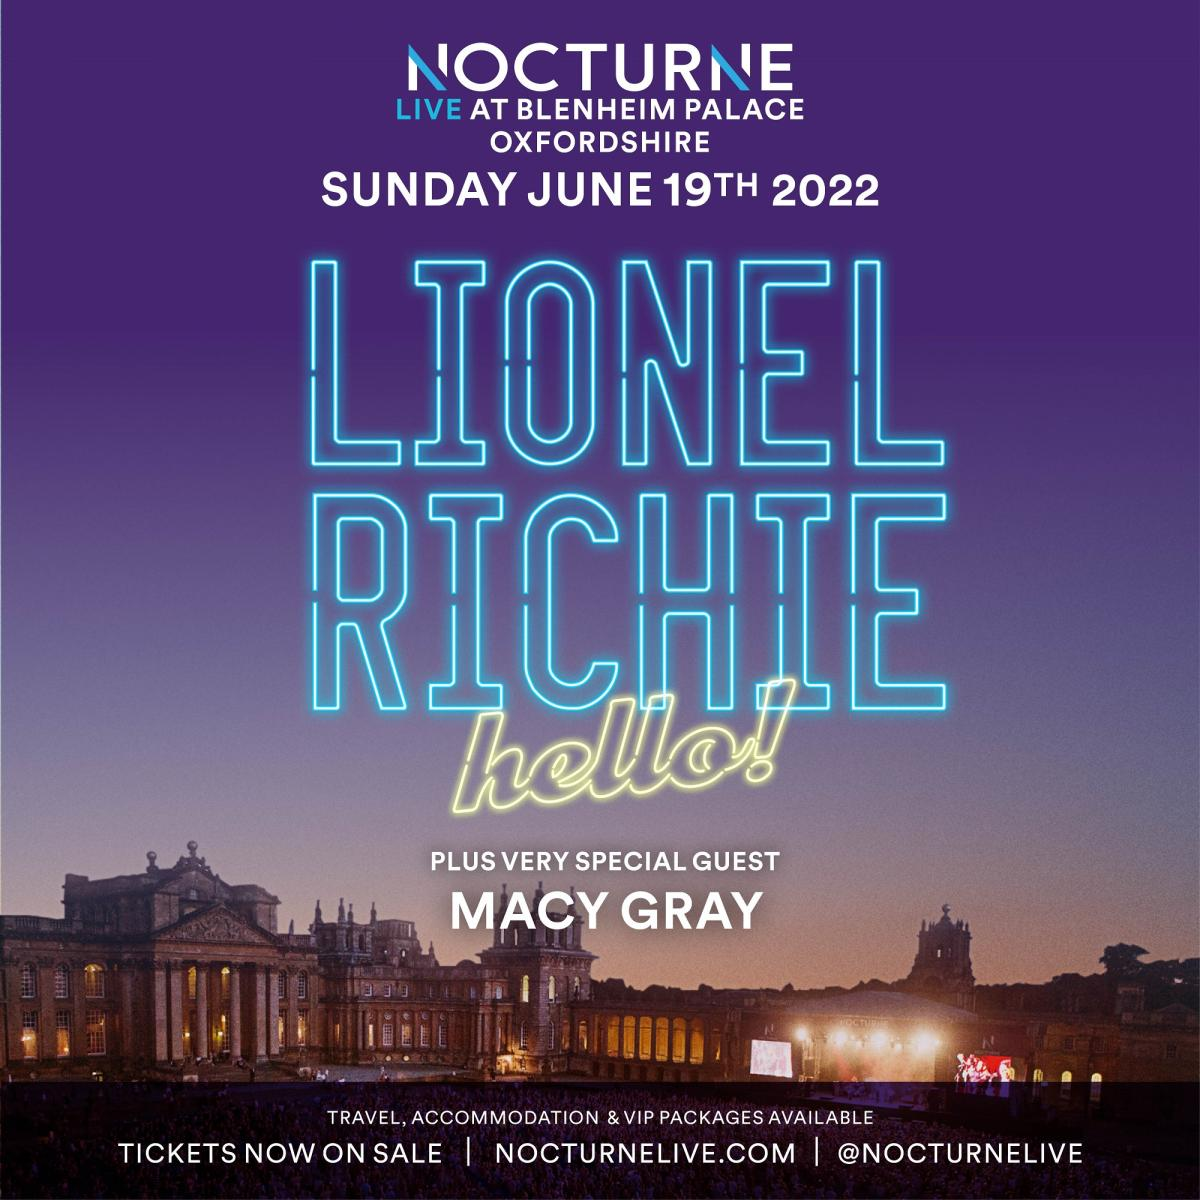 Nocturne Live 2022 at Blenheim Palace - Poster 05